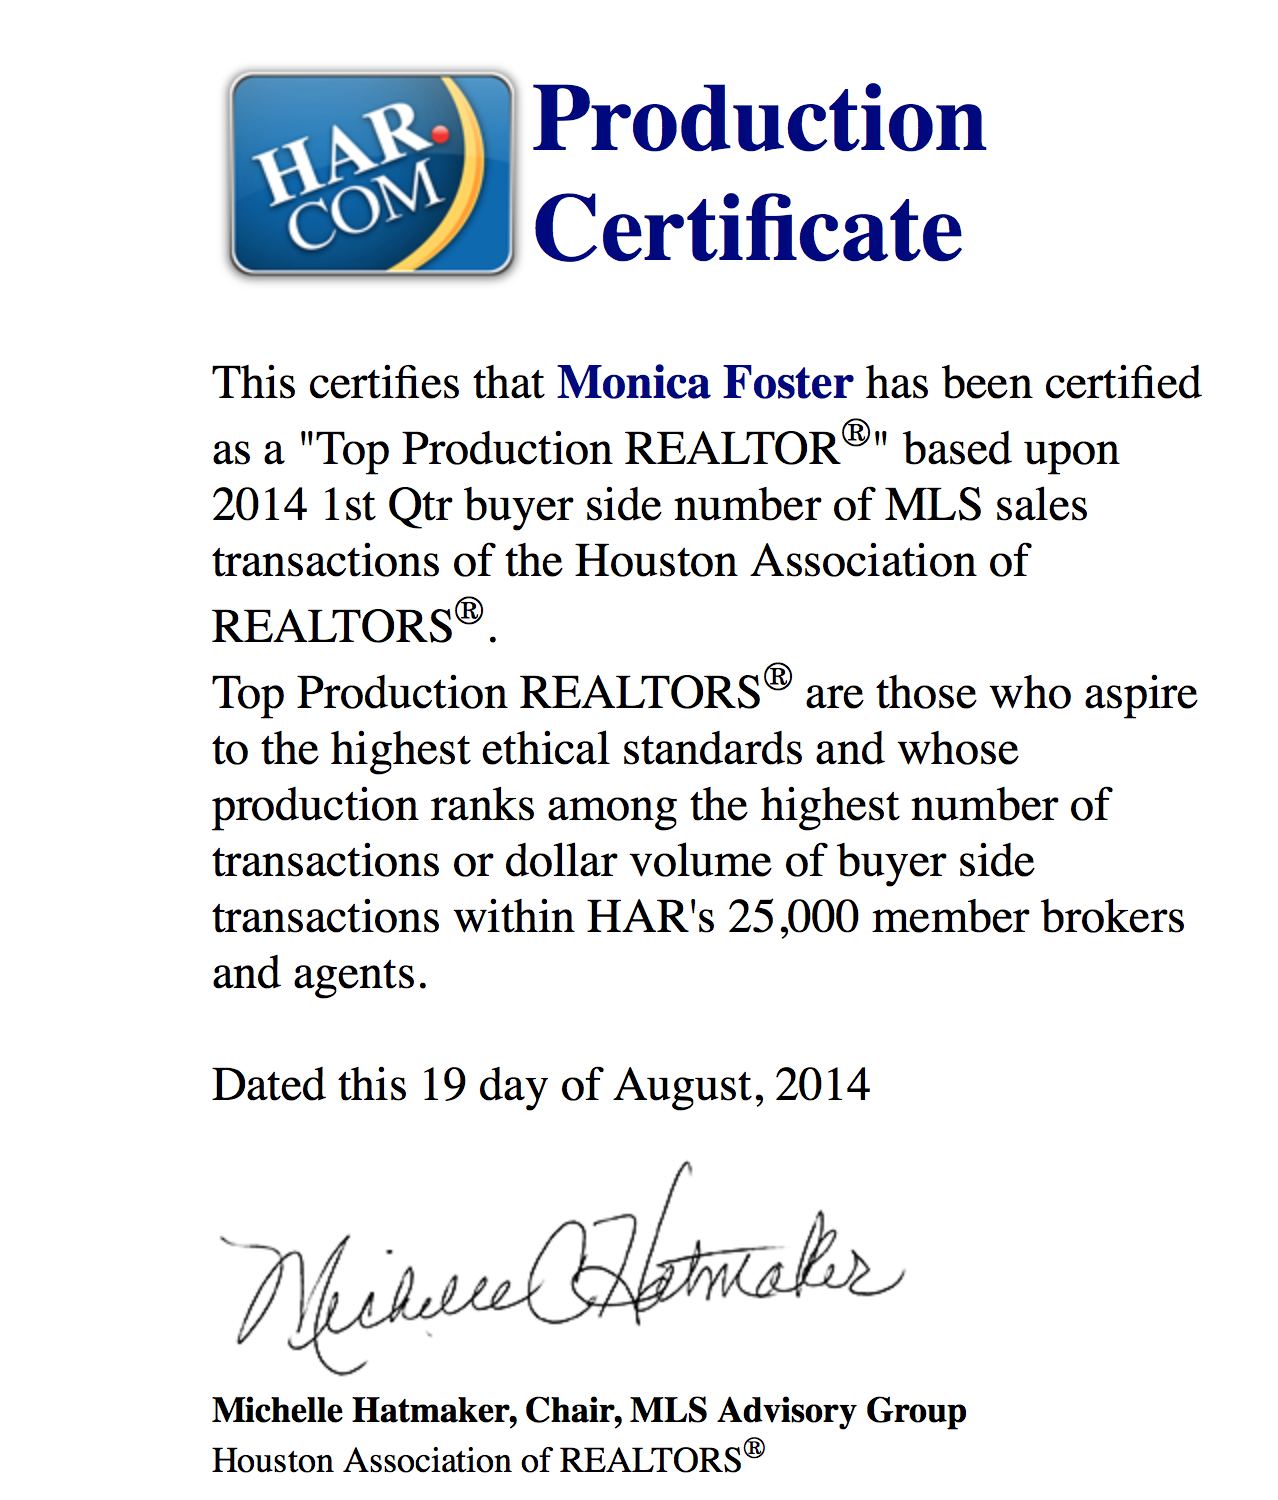 HAR Top Production 1st Qtr 2014 Buyer Sides